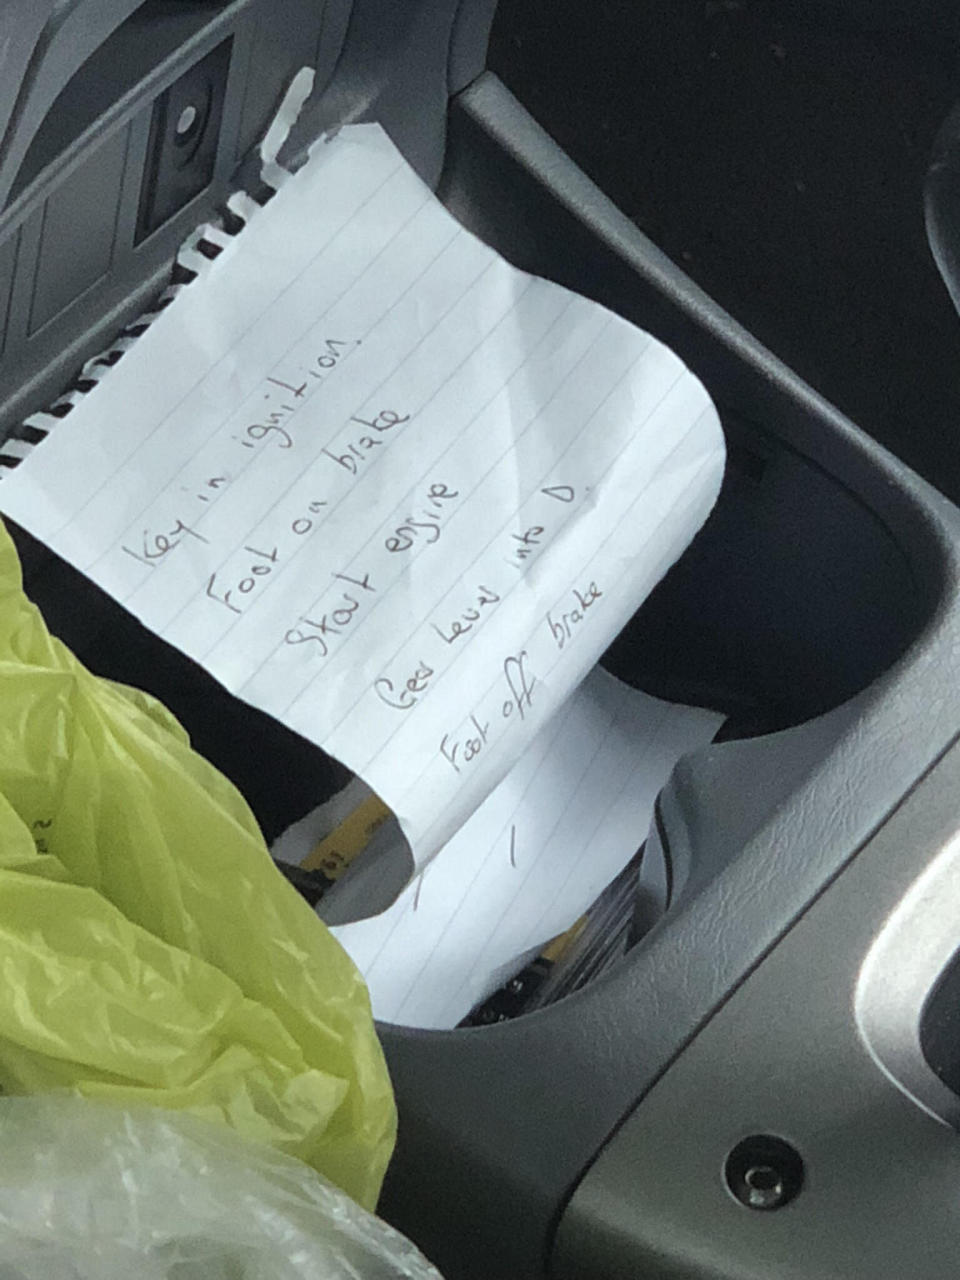 The note has basic instructions on driving (SWNS)